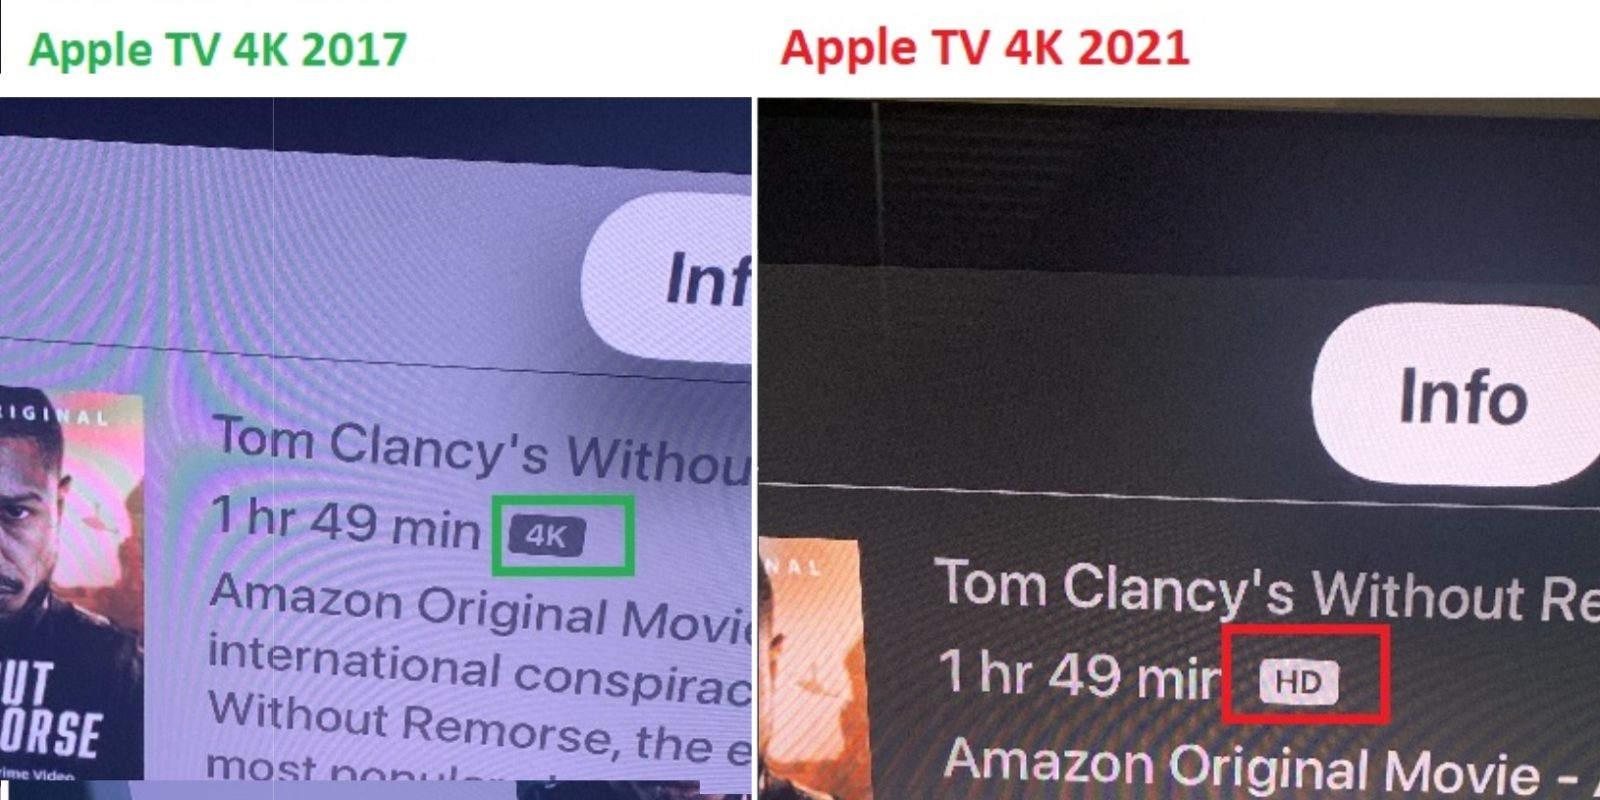 Some 4k Content Incorrectly Showing As Hd On New Apple Tv Box Update Fixed In Beta 9to5mac